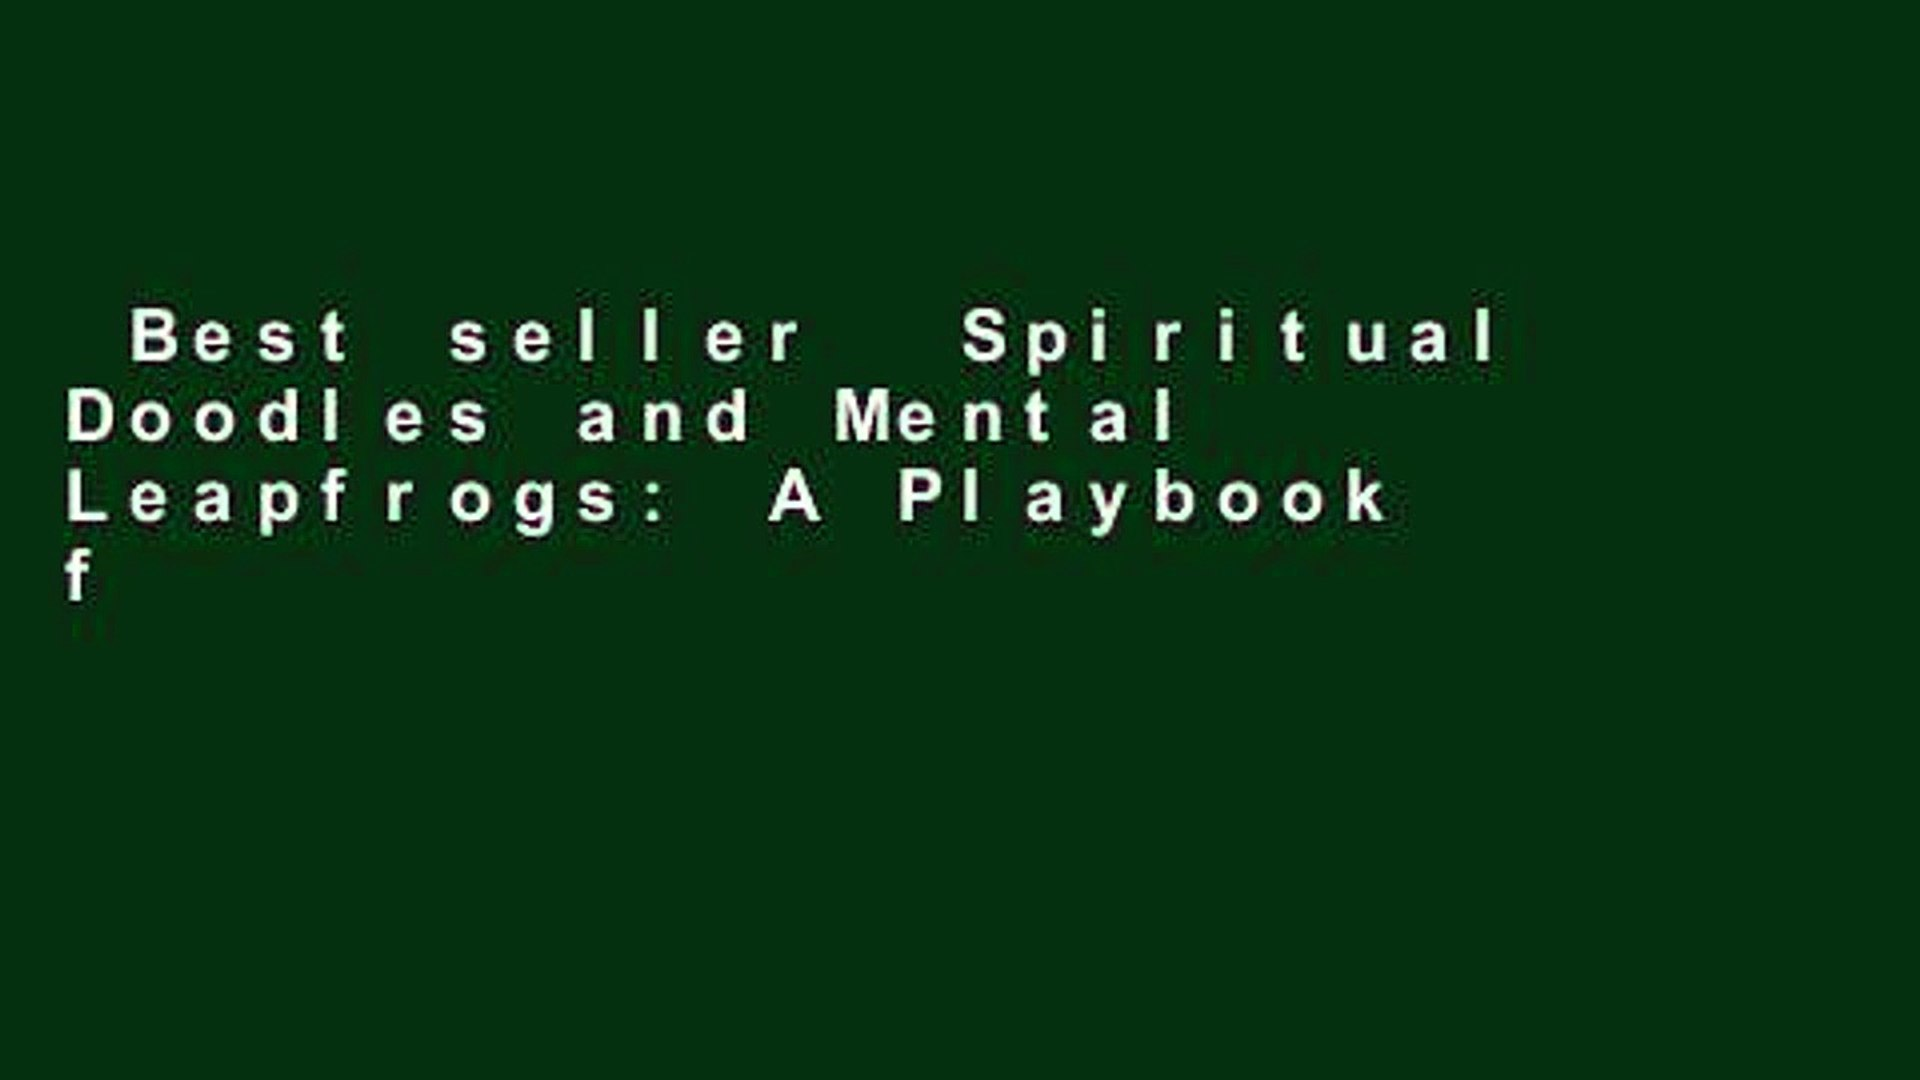 Best seller  Spiritual Doodles and Mental Leapfrogs: A Playbook for Unleashing Spiritual